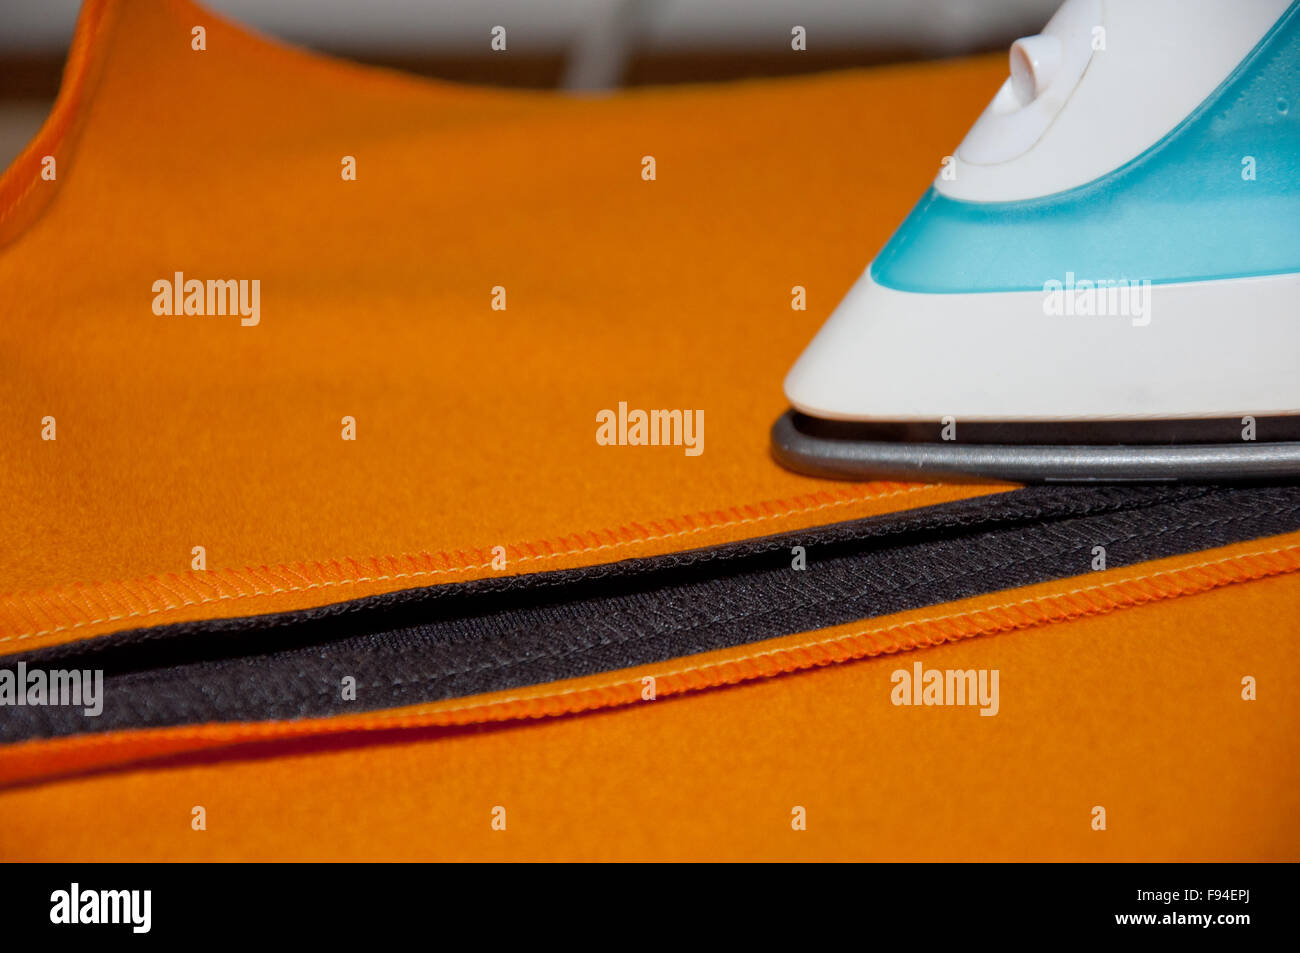 ironing housework orange and black cloth indoors - Stock Image